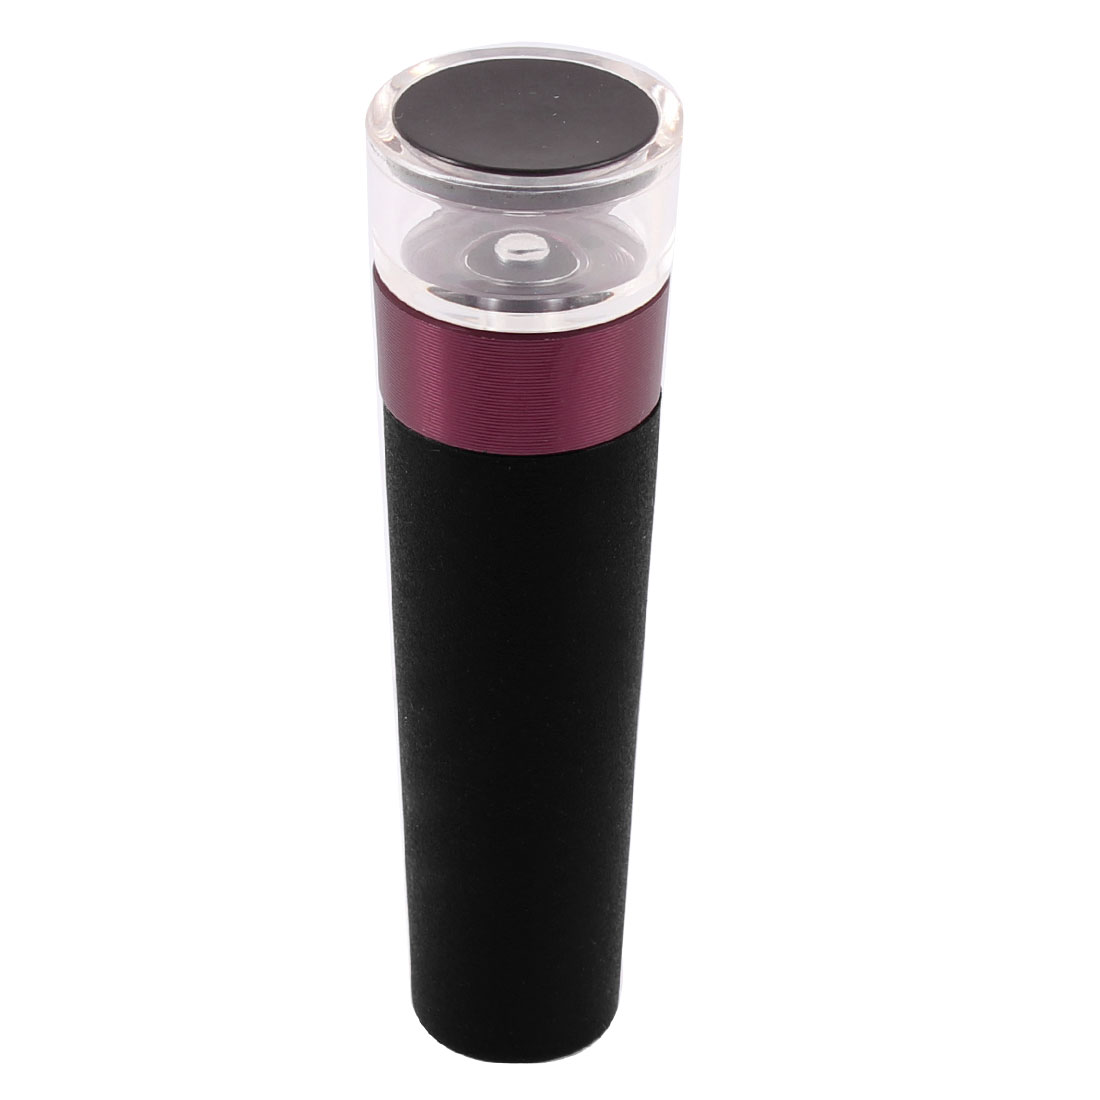 Wine Saver Storage Vacuum Sealing Bottle Air Pump Sealer Cap Stopper Black